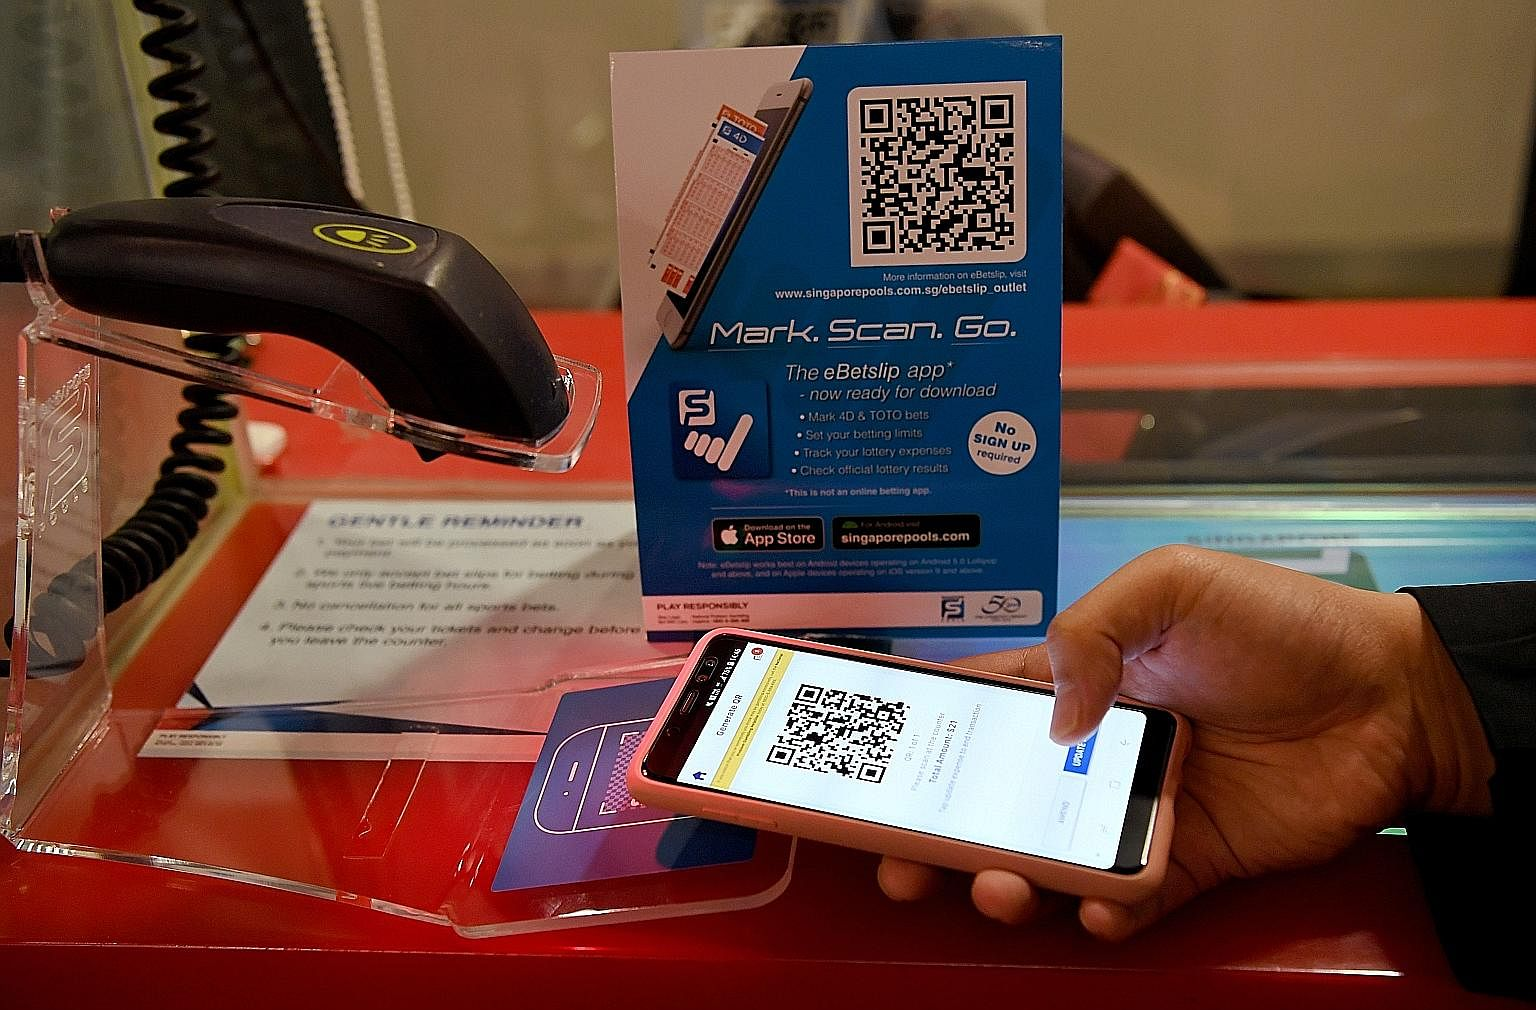 E-betting slip app lets punters save paper, track expenses ...